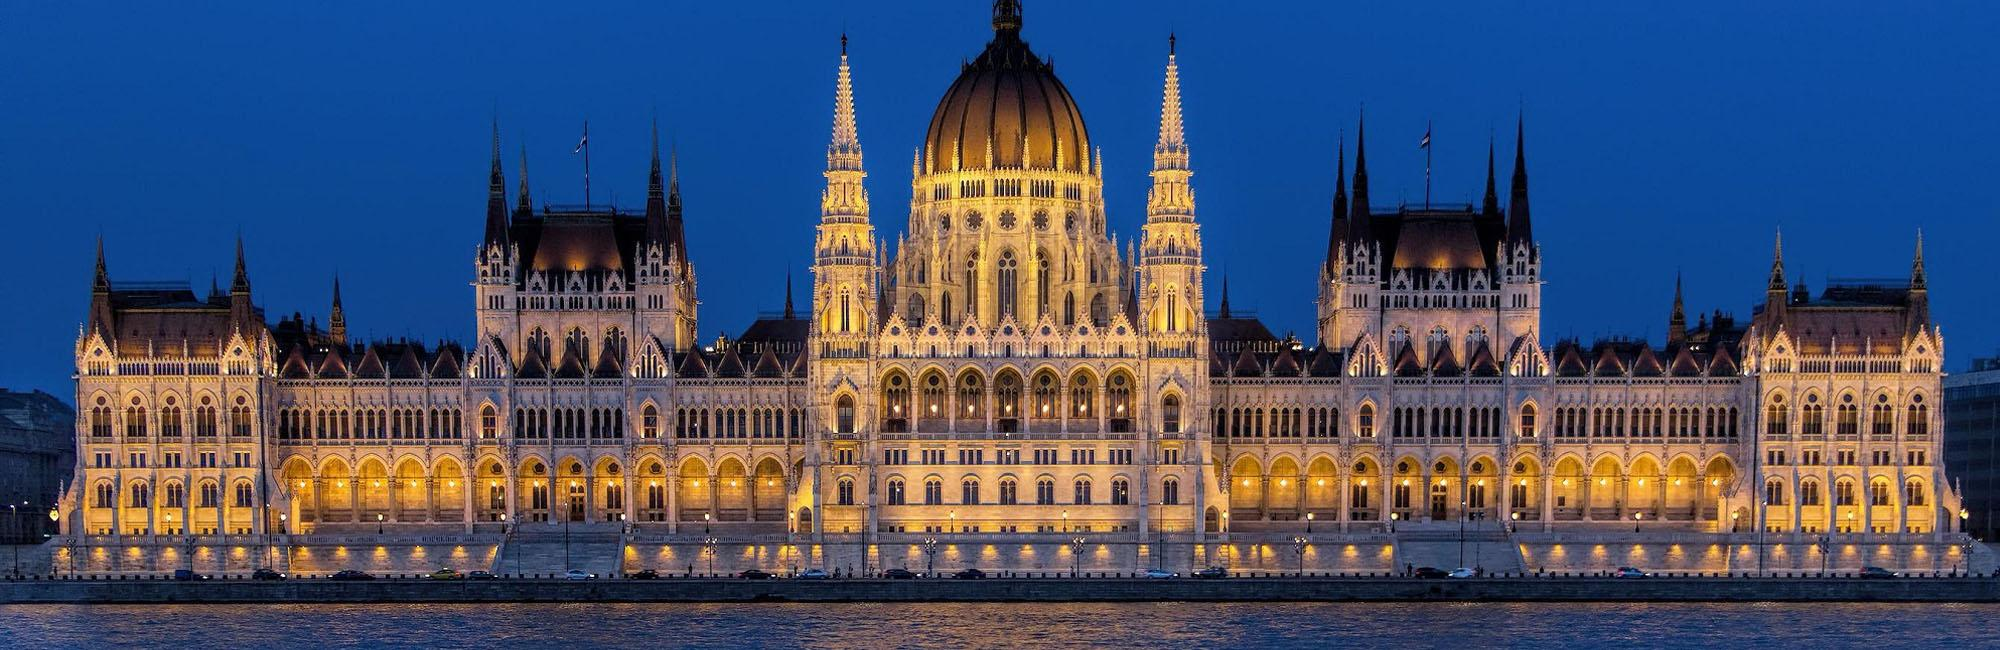 Parlament in Budapest at night